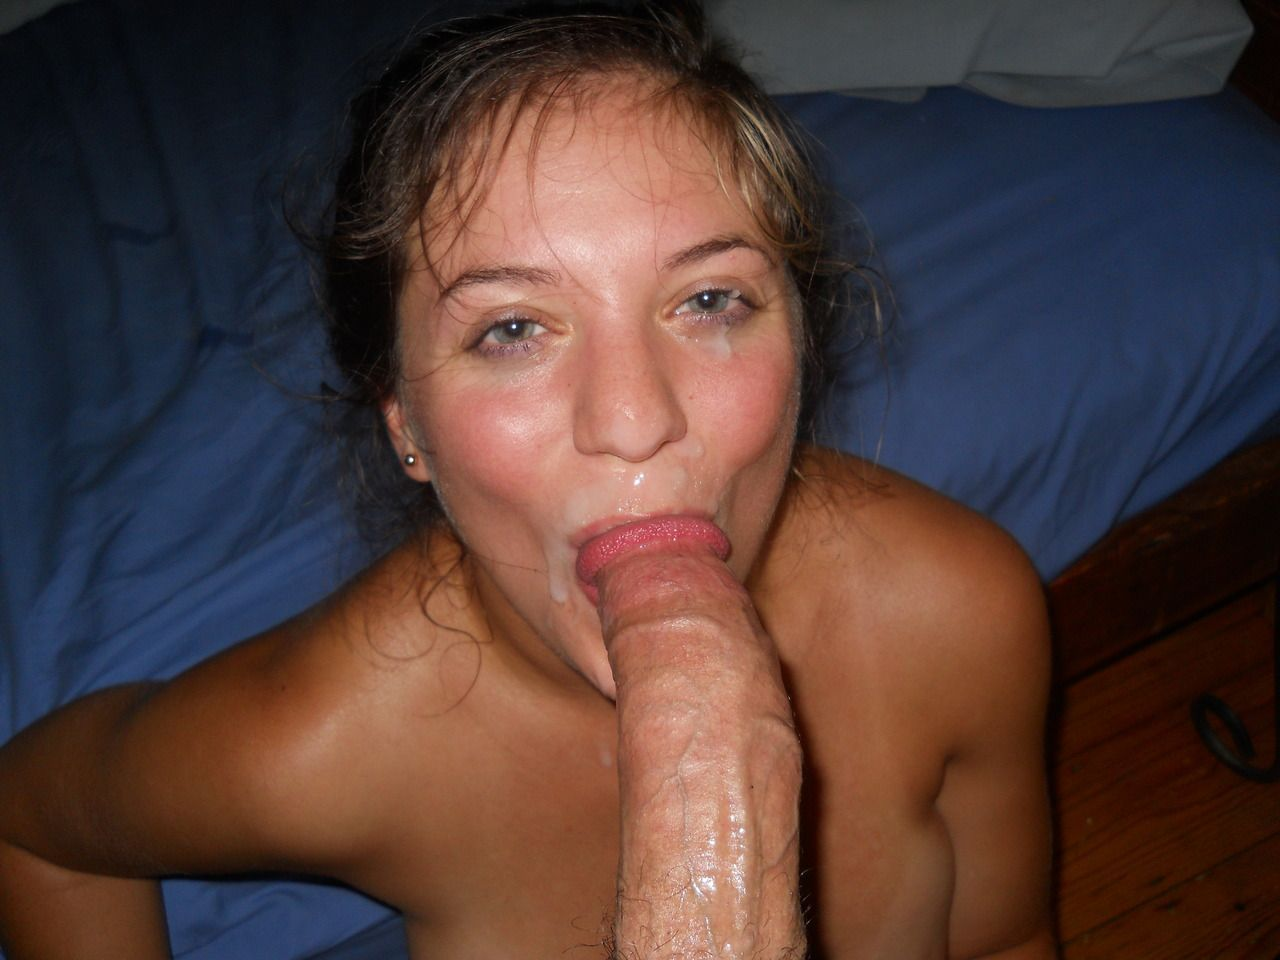 Blowjob and Cum Porn tube videos